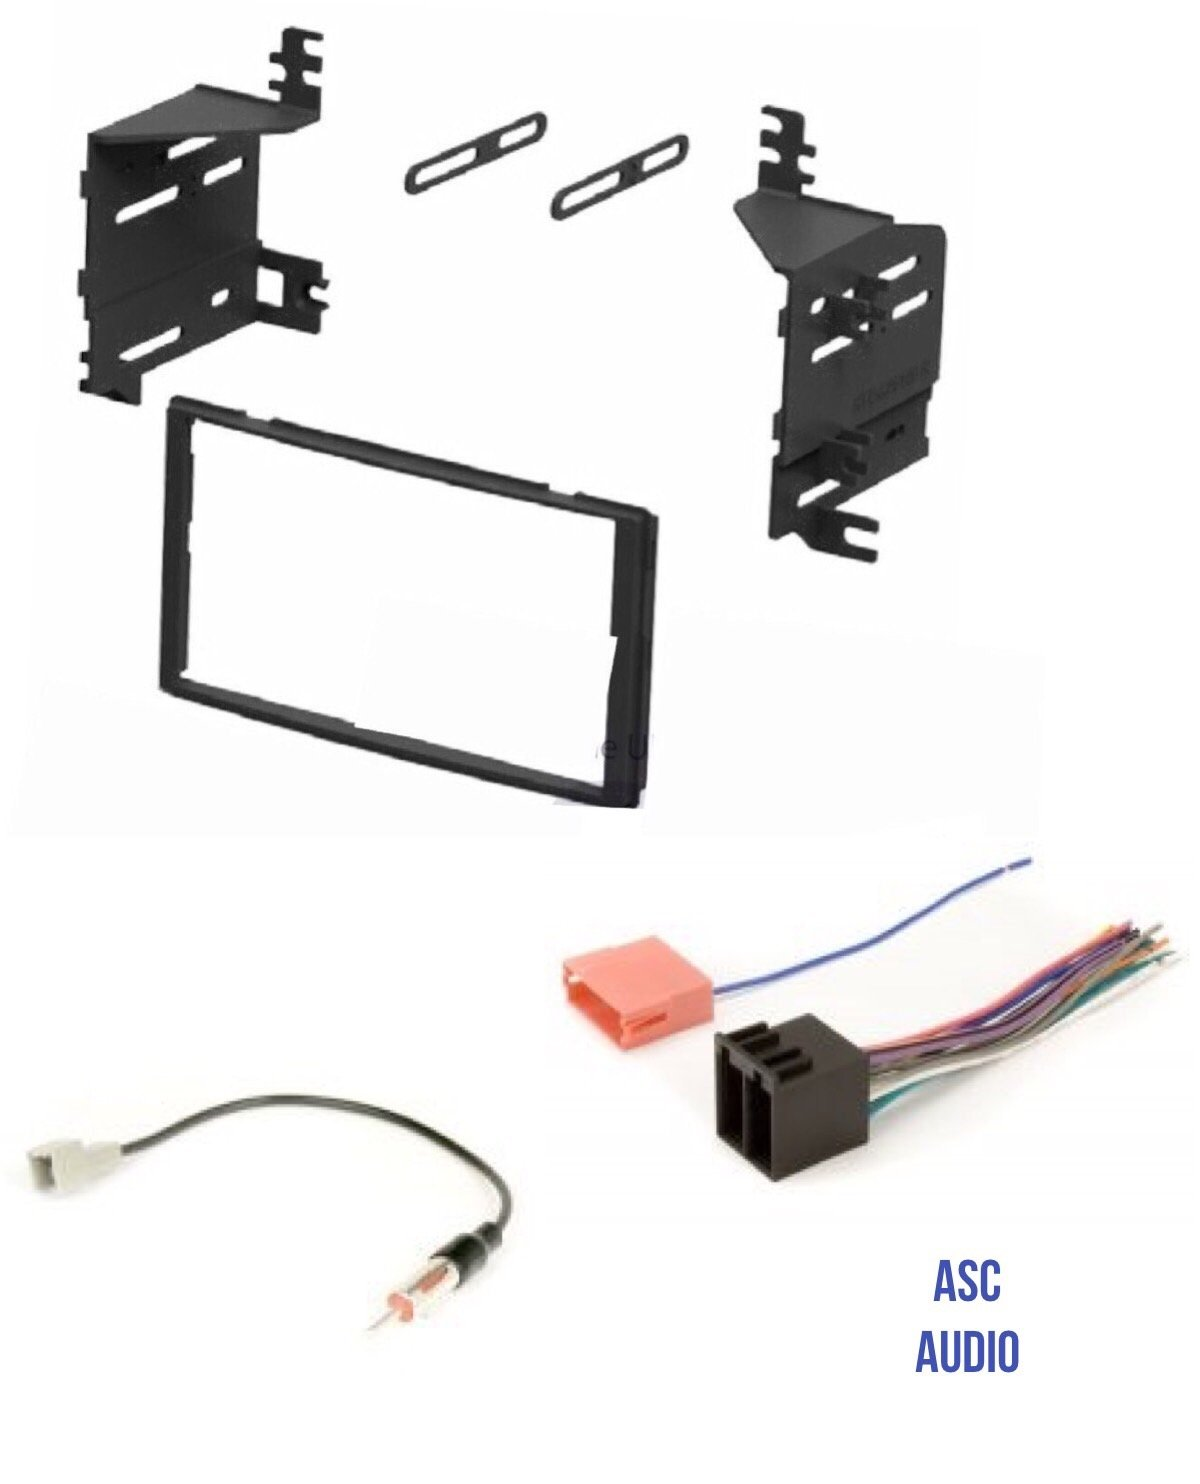 ASC Car Stereo Radio Install Dash Kit, Wire Harness, and Antenna Adapter for installing an Aftermarket Double Din Radio for 2009 2010 2011 2012 Hyundai Santa Fe without Factory Navigation Other